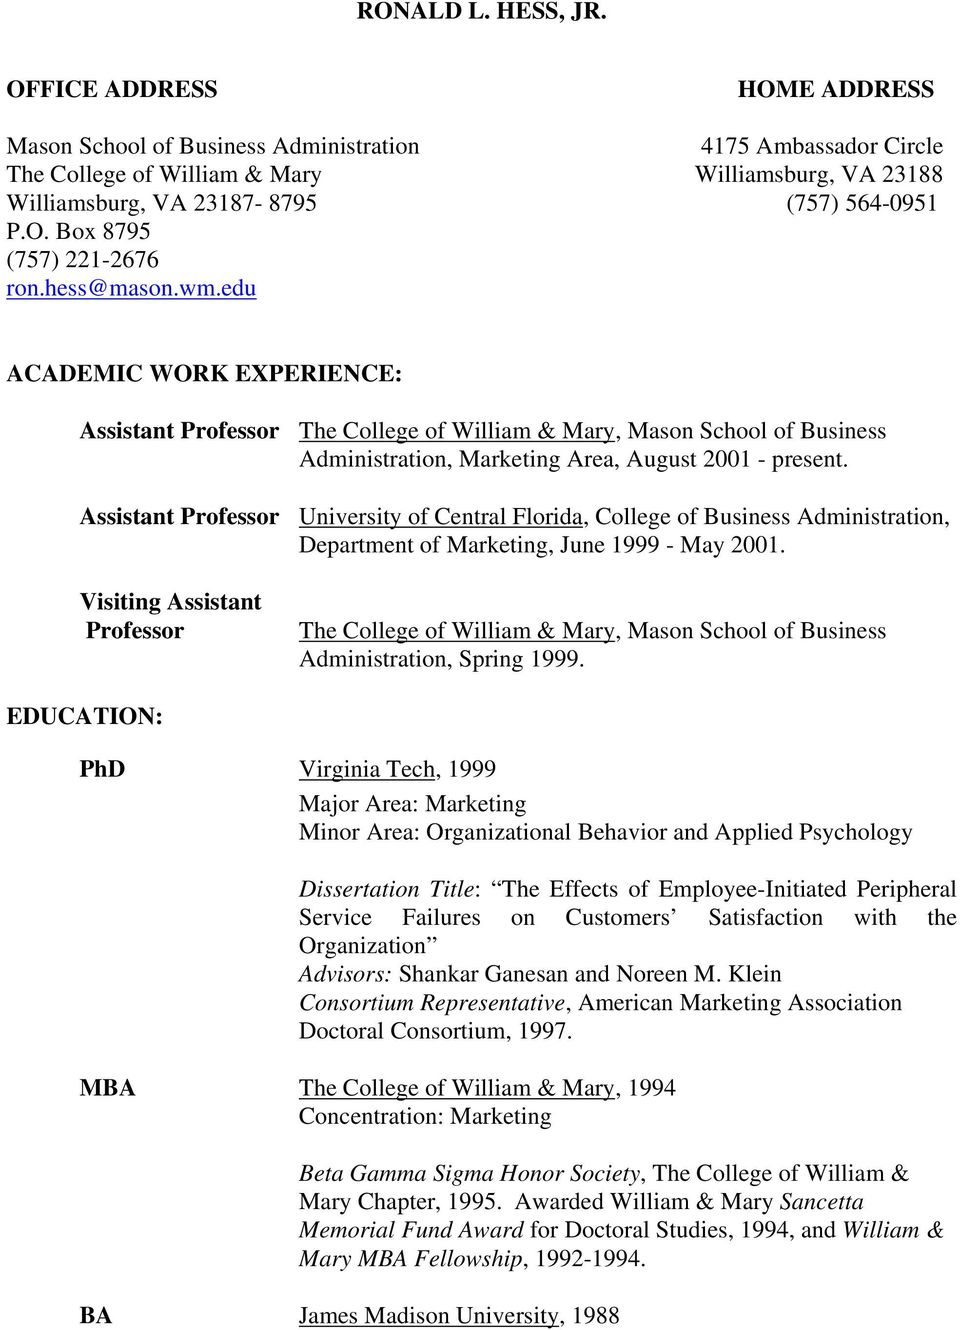 hess@mason.wm.edu ACADEMIC WORK EXPERIENCE: Assistant Professor The College of William & Mary, Mason School of Business Administration, Marketing Area, August 2001 - present.